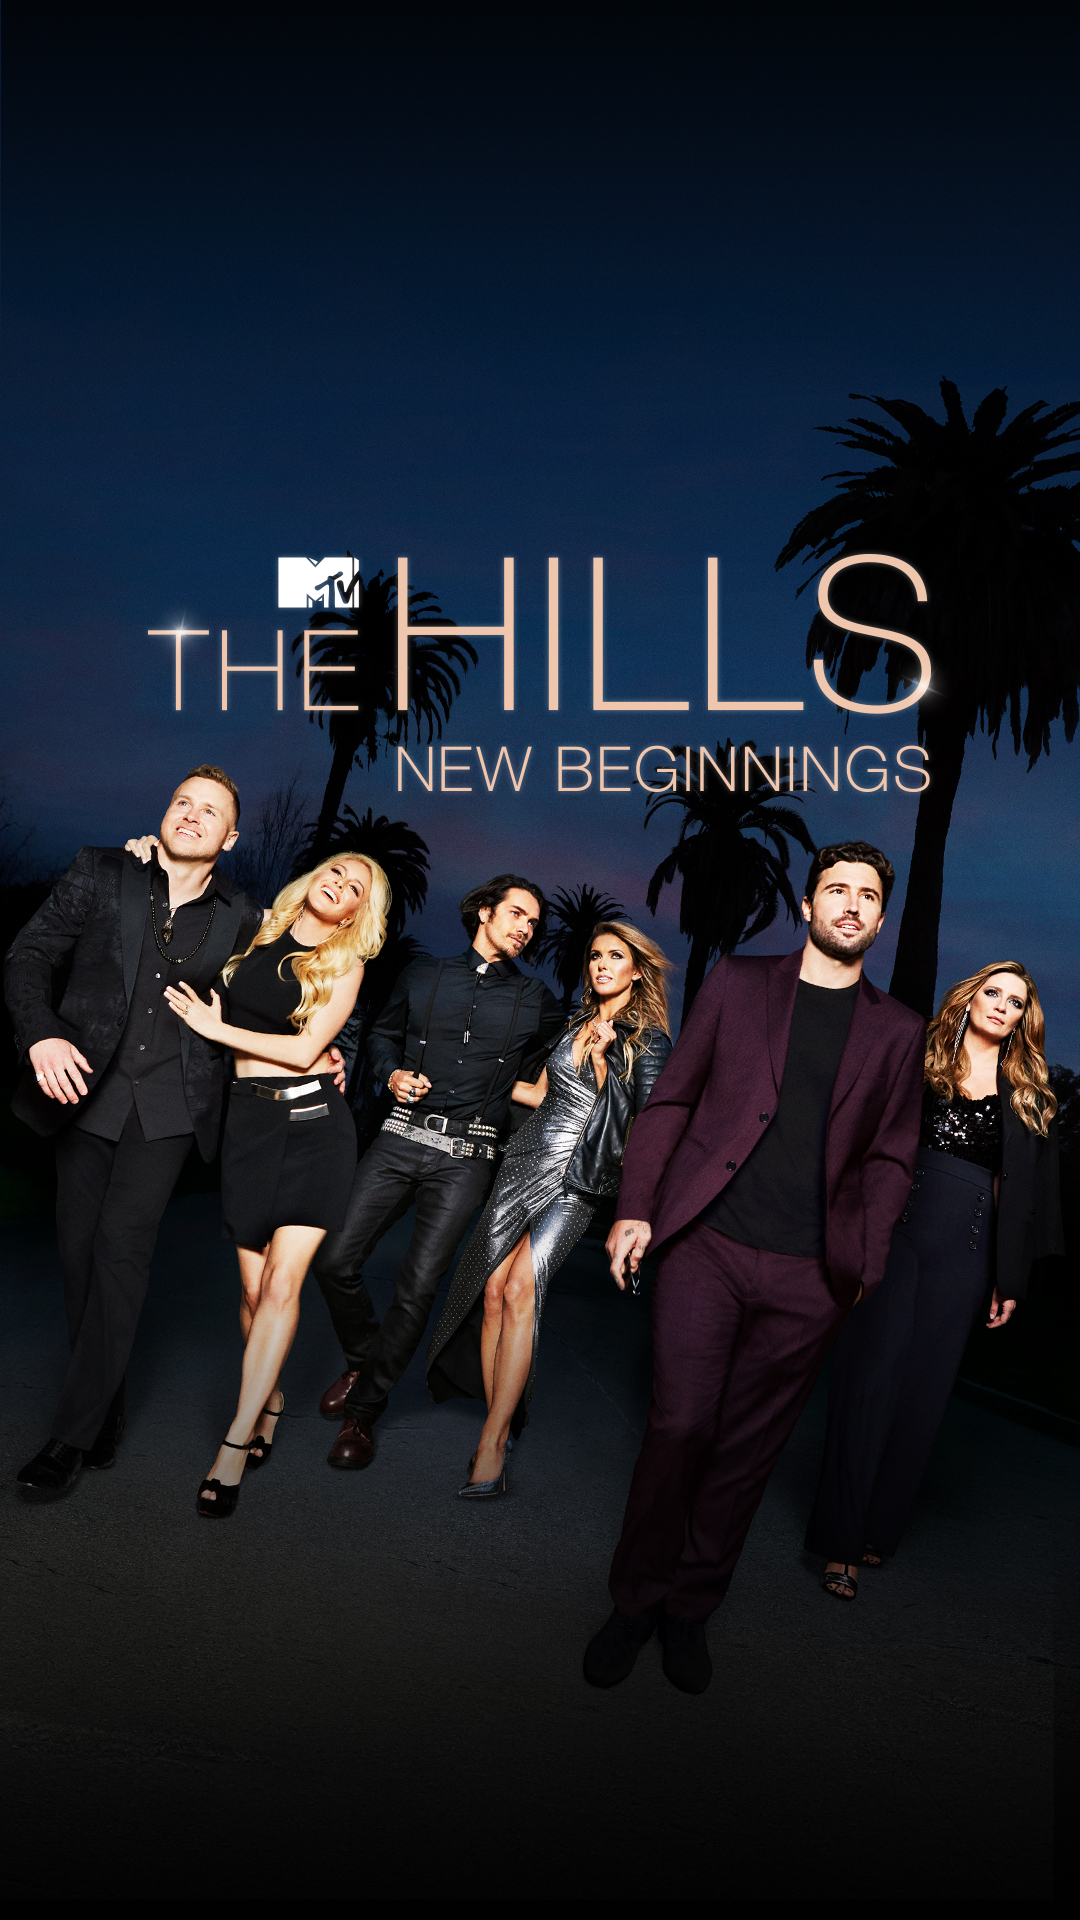 The Hills New Beginnings